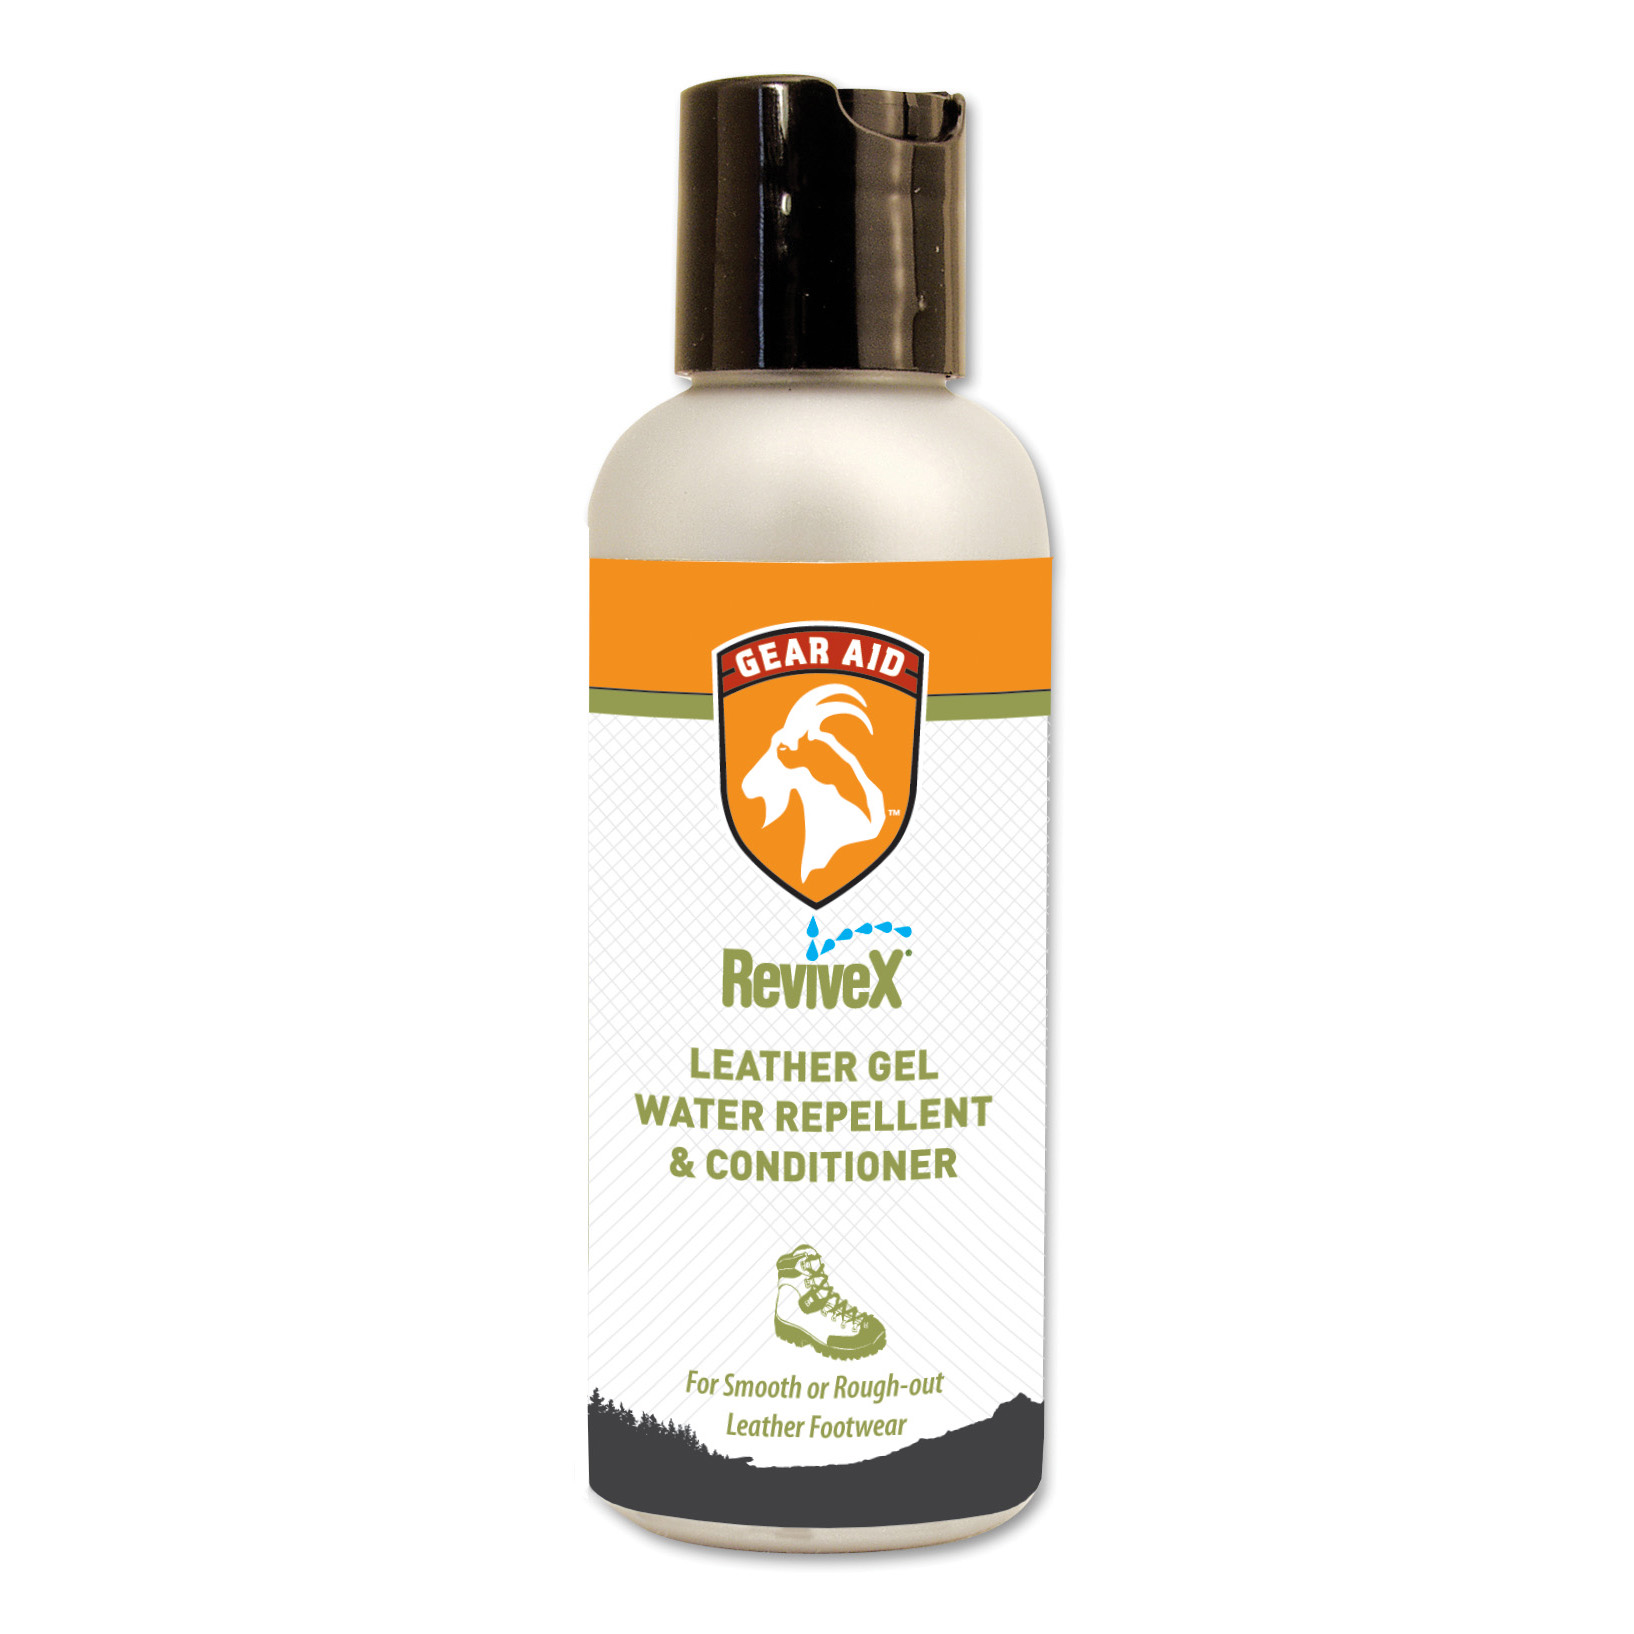 Gear Aid Revivex Water Repellent Leather Gel and Conditioner